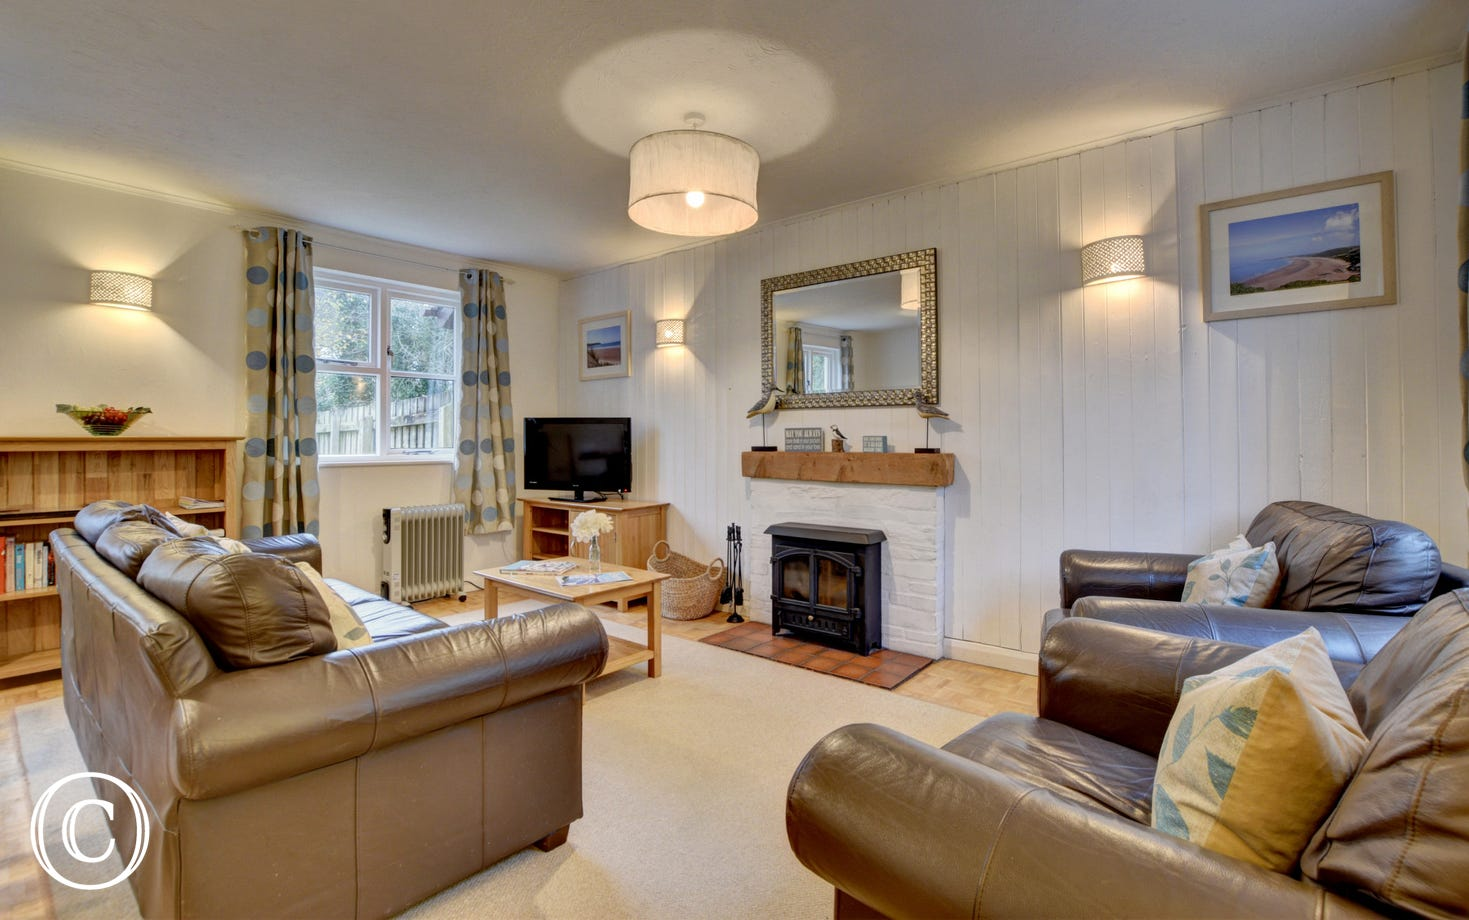 The stylish living /dining room has comfy leather sofas and a welcoming wood burning stove